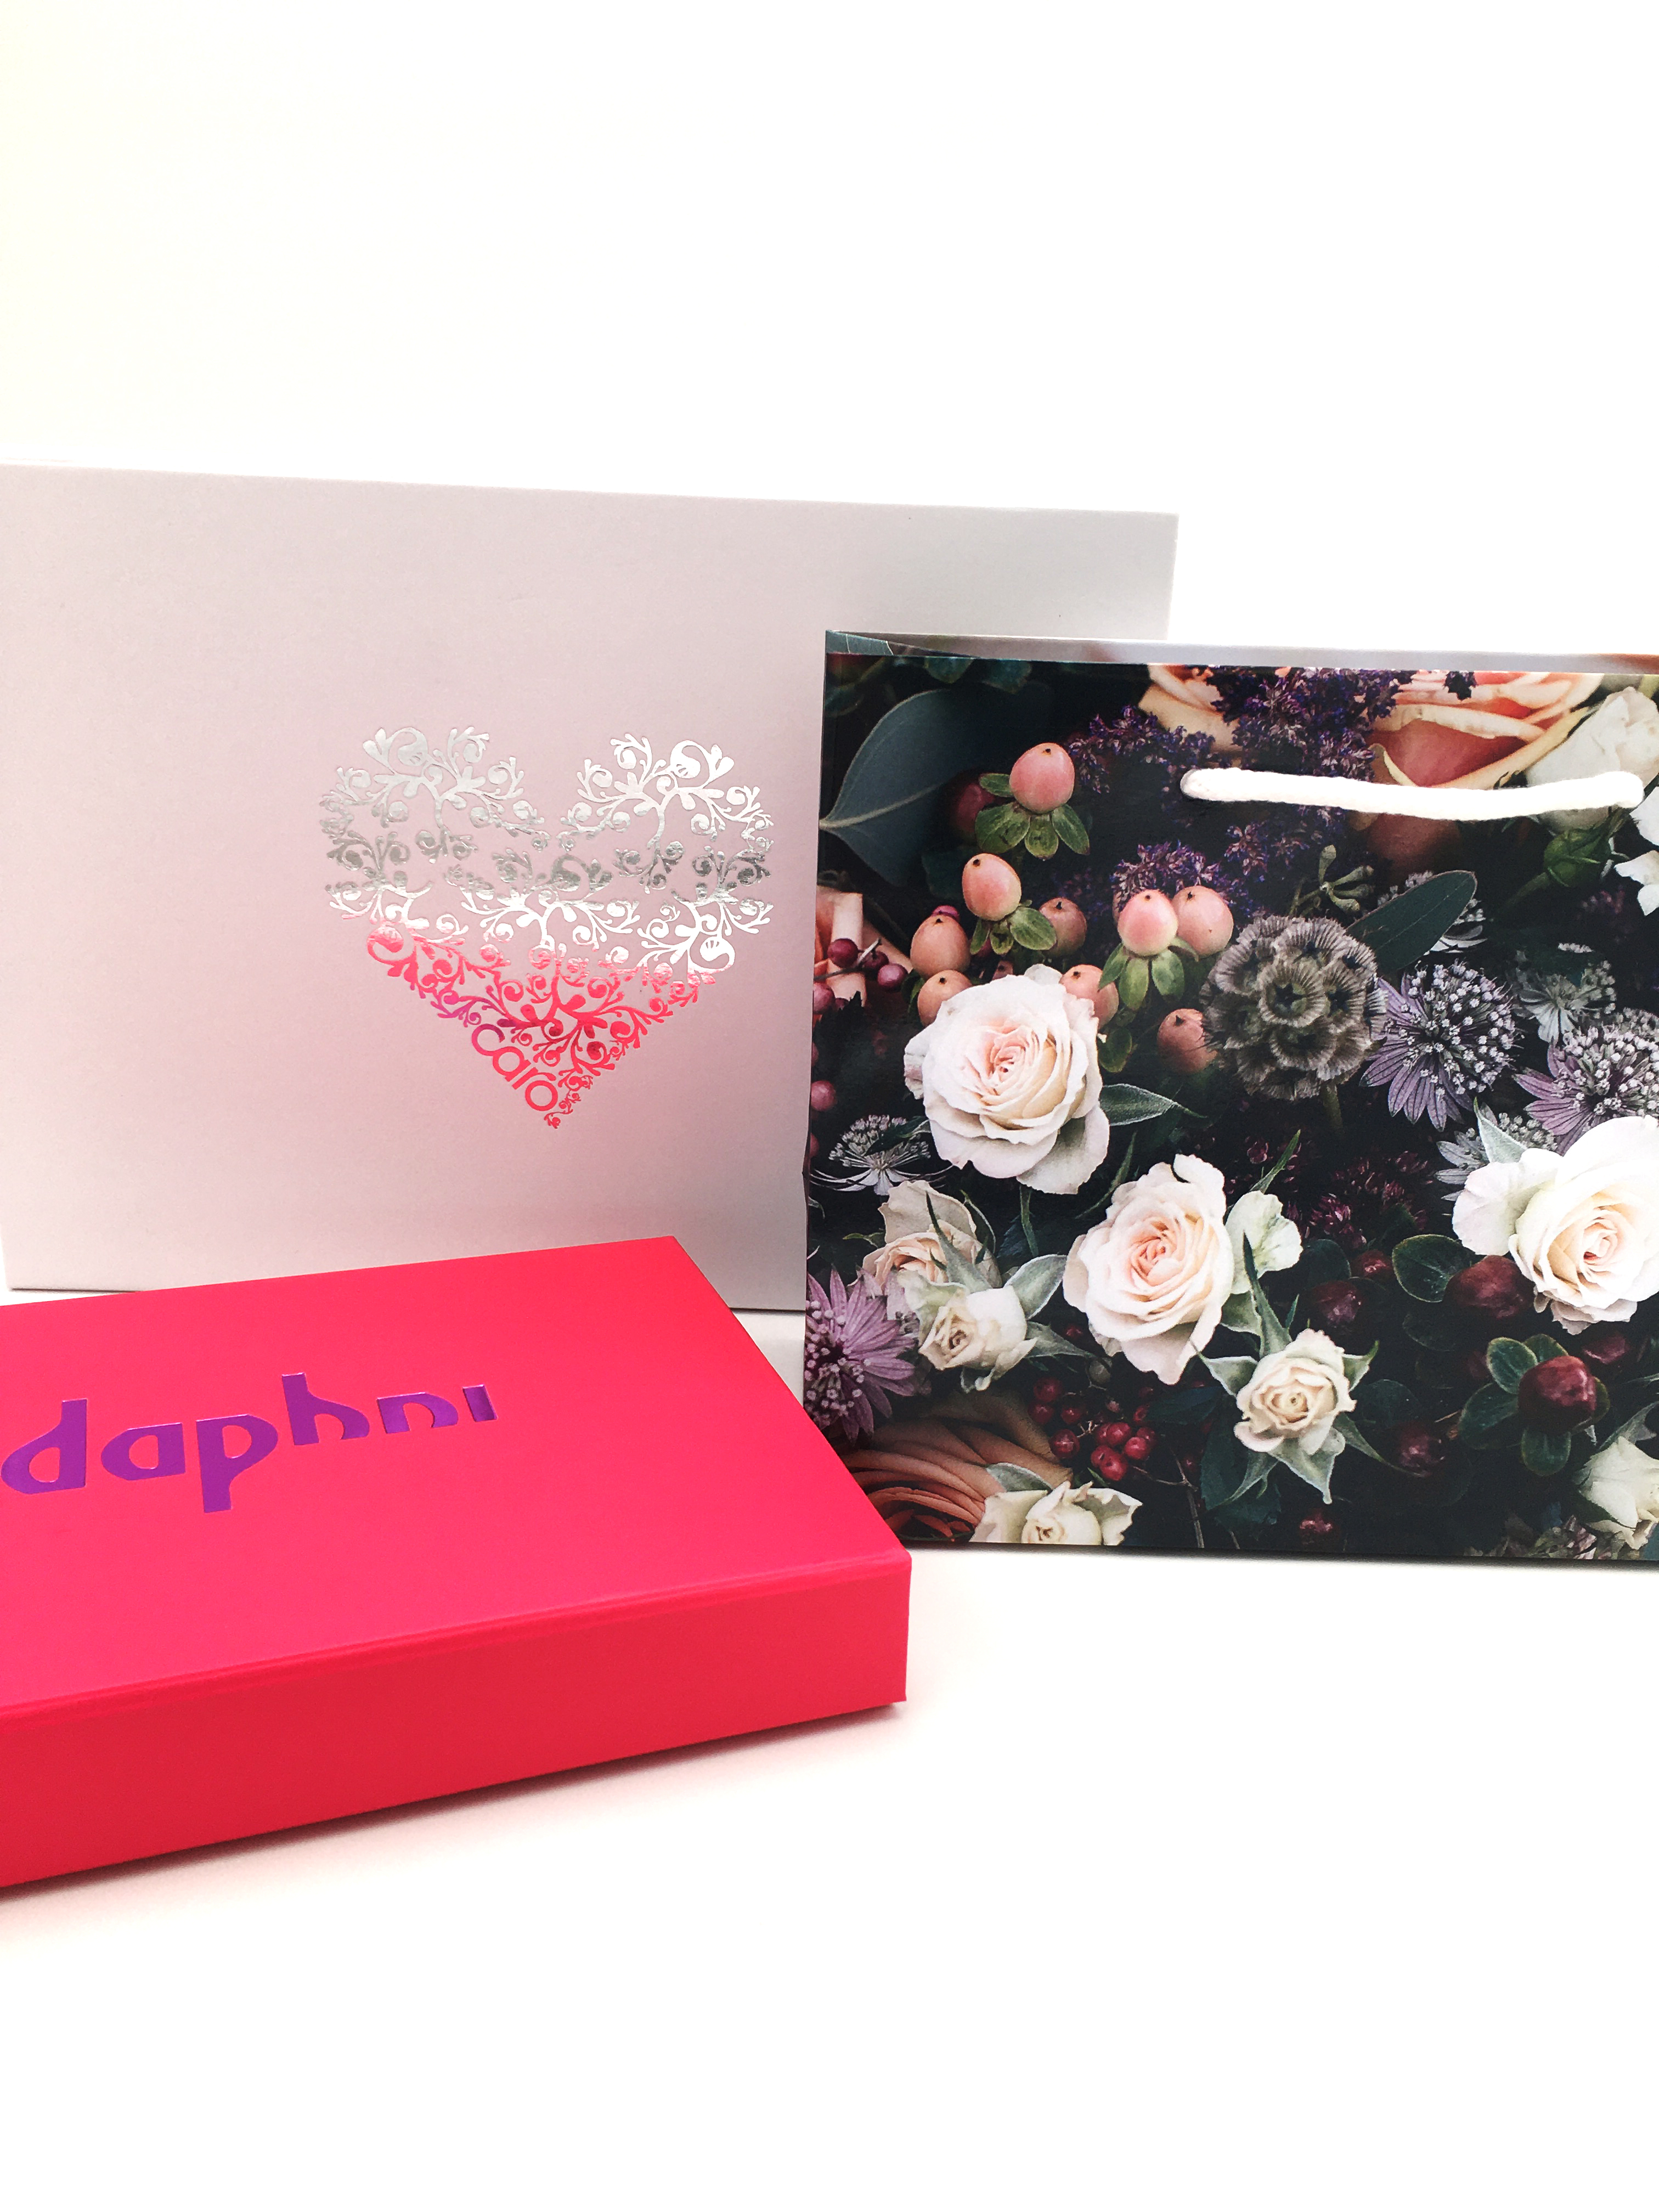 Customized packaging for Valentine's day